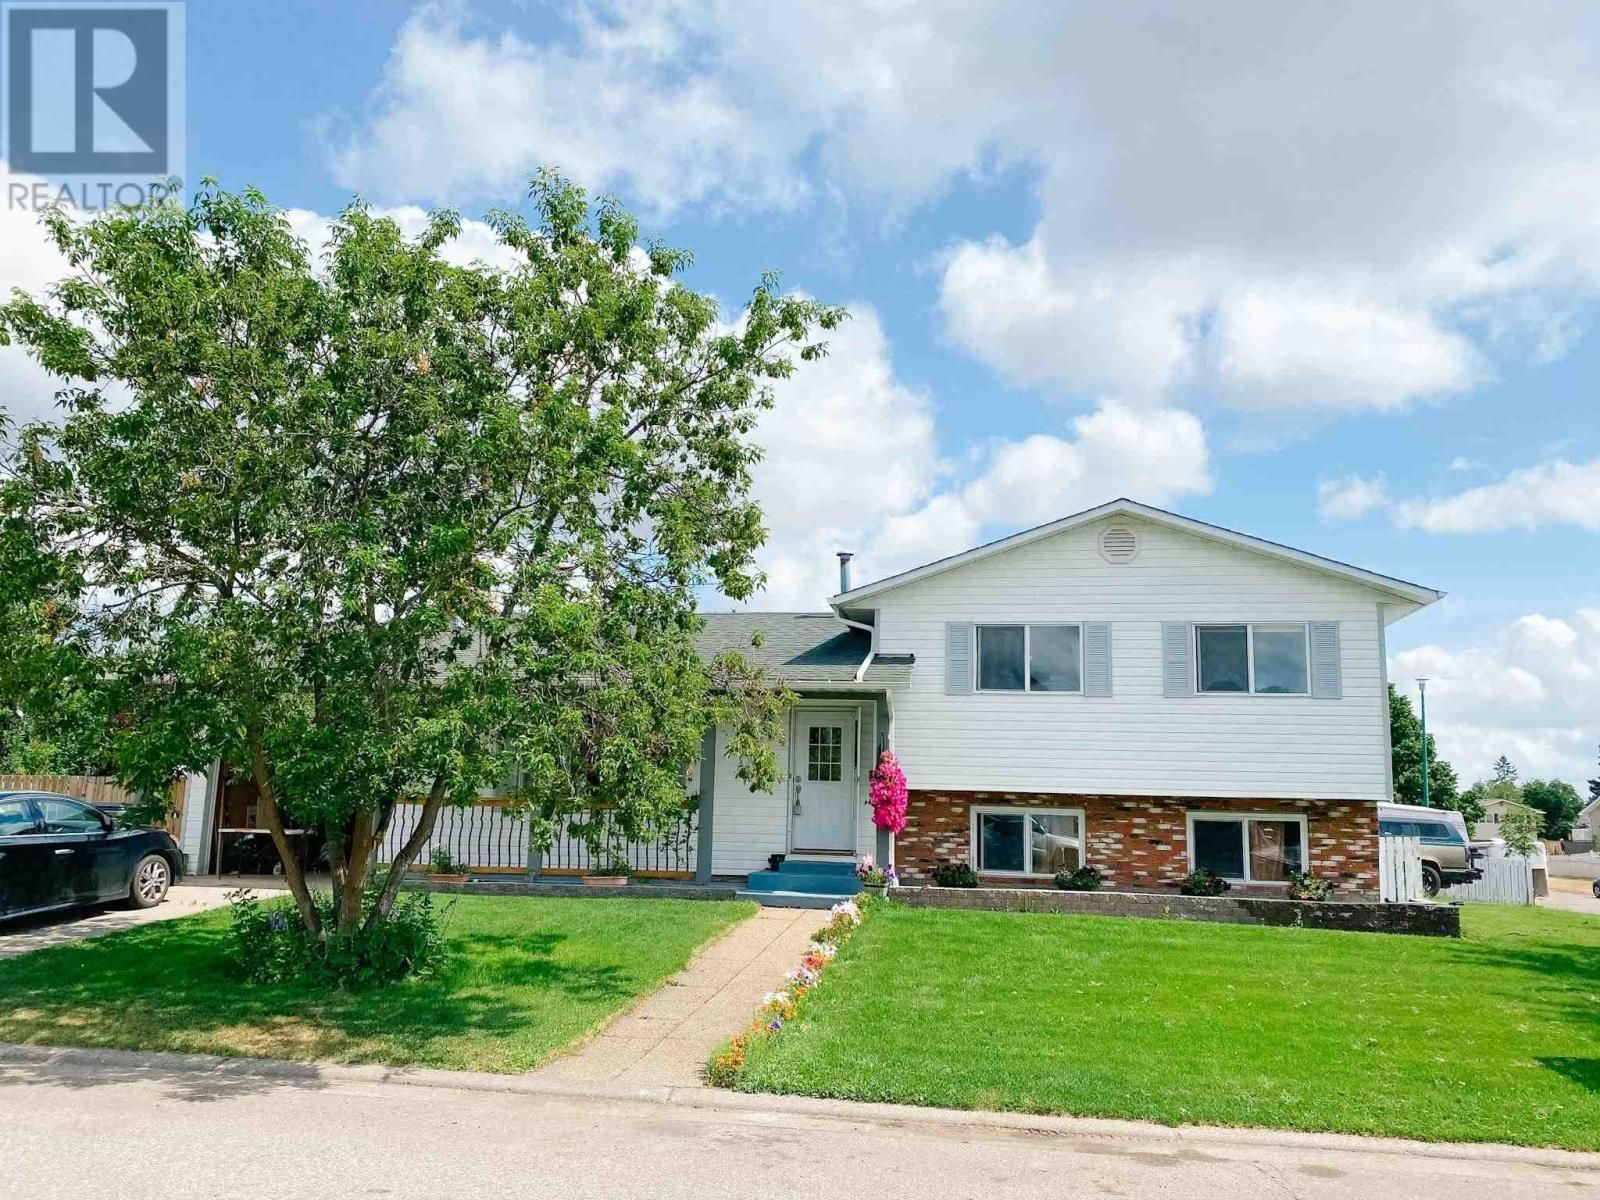 Main Photo: 514 LACOMA STREET in Prince George: House for sale : MLS®# R2602451